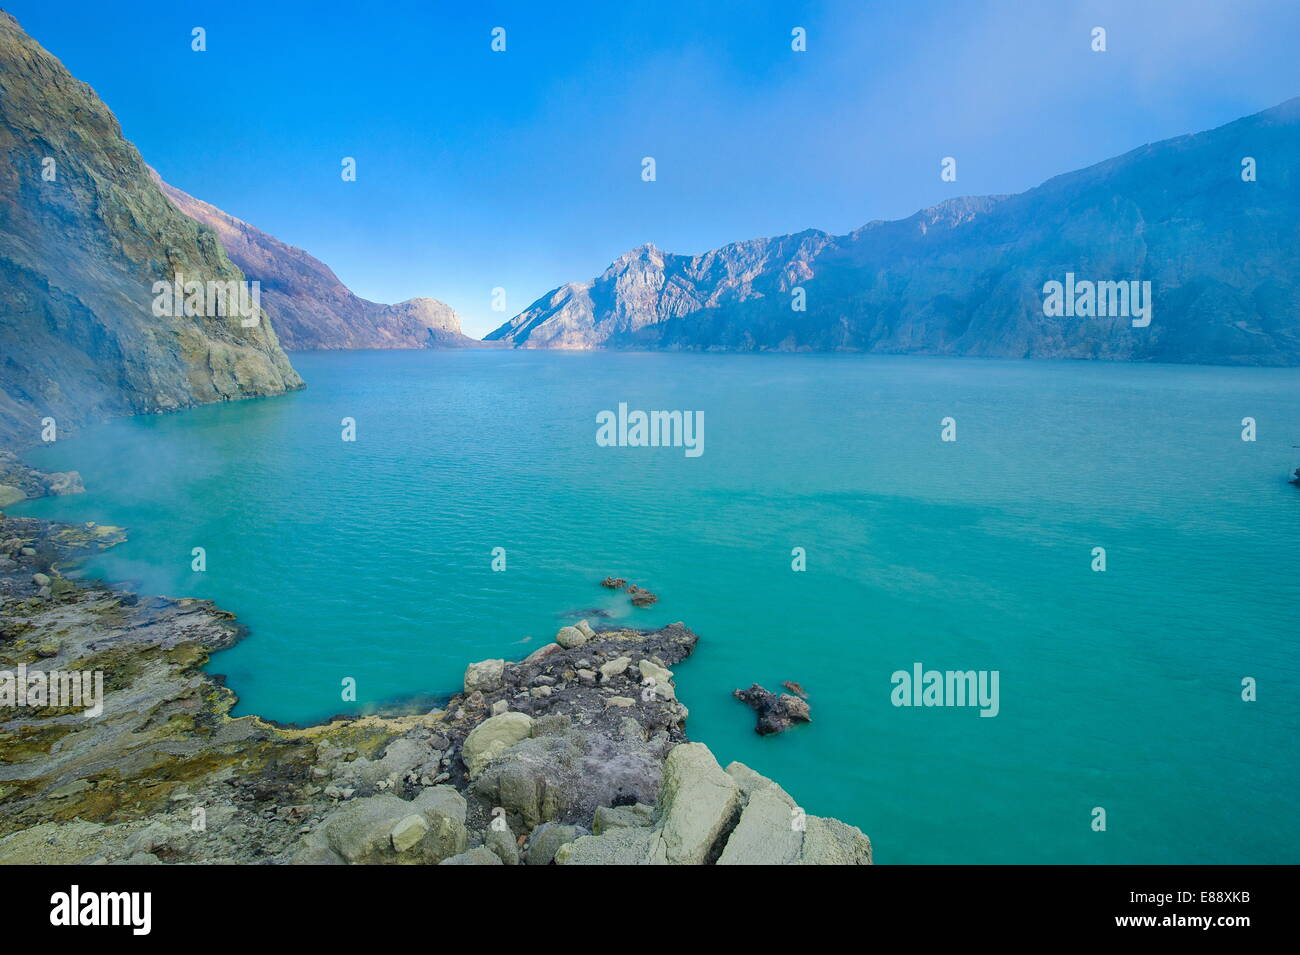 The very acid Ijen crater lake in the Ijen Volcano, Java, Indonesia, Southeast Asia, Asia - Stock Image